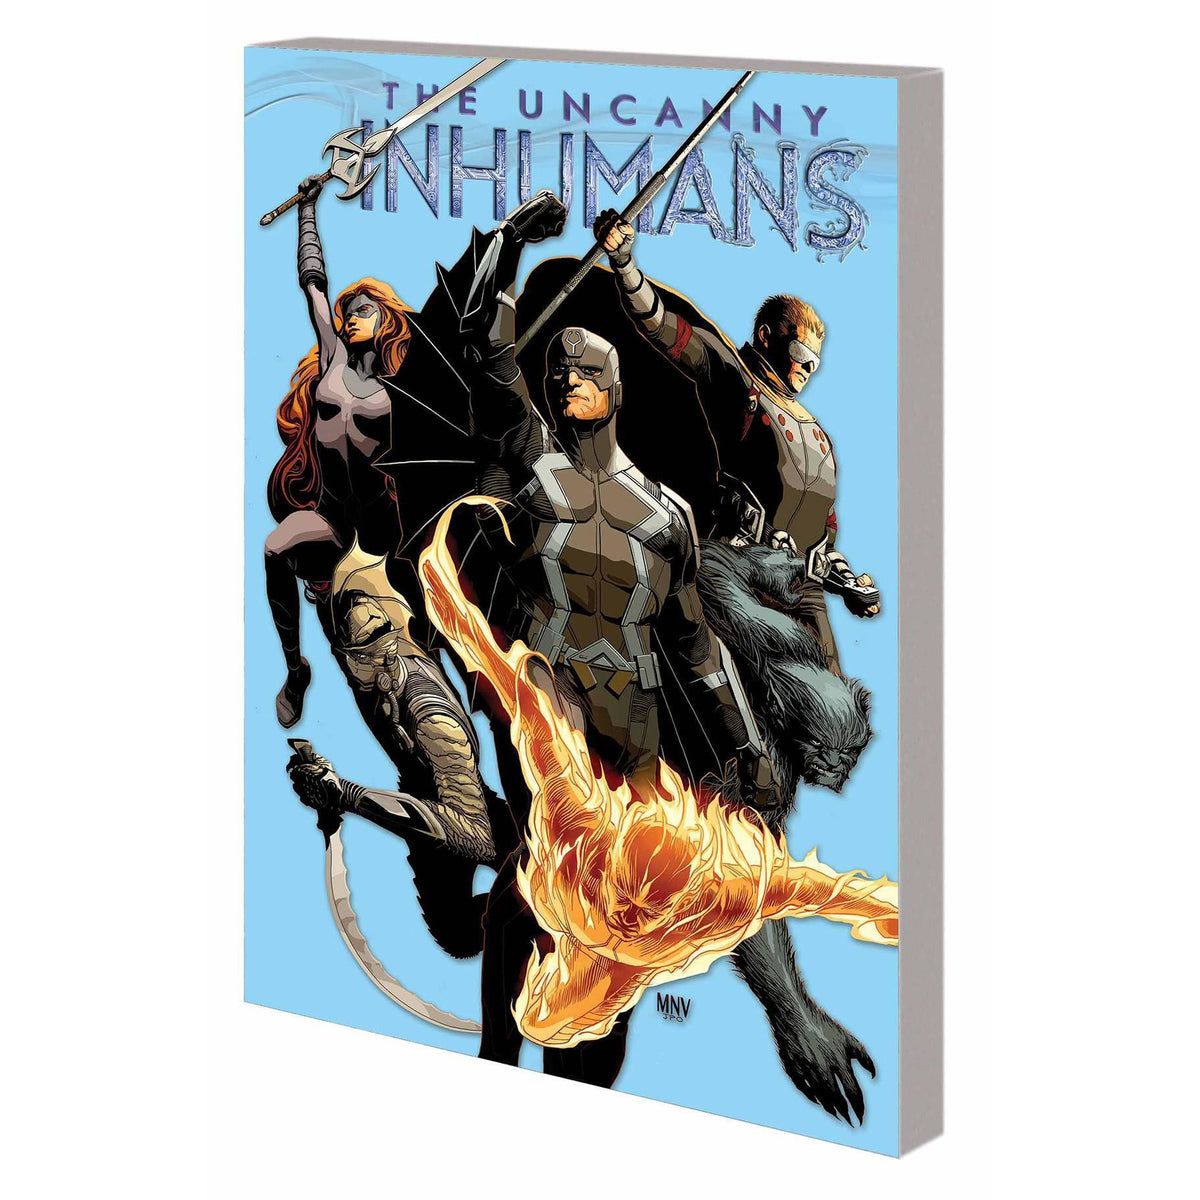 UNCANNY INHUMANS VOL 1 TIME CRUSH